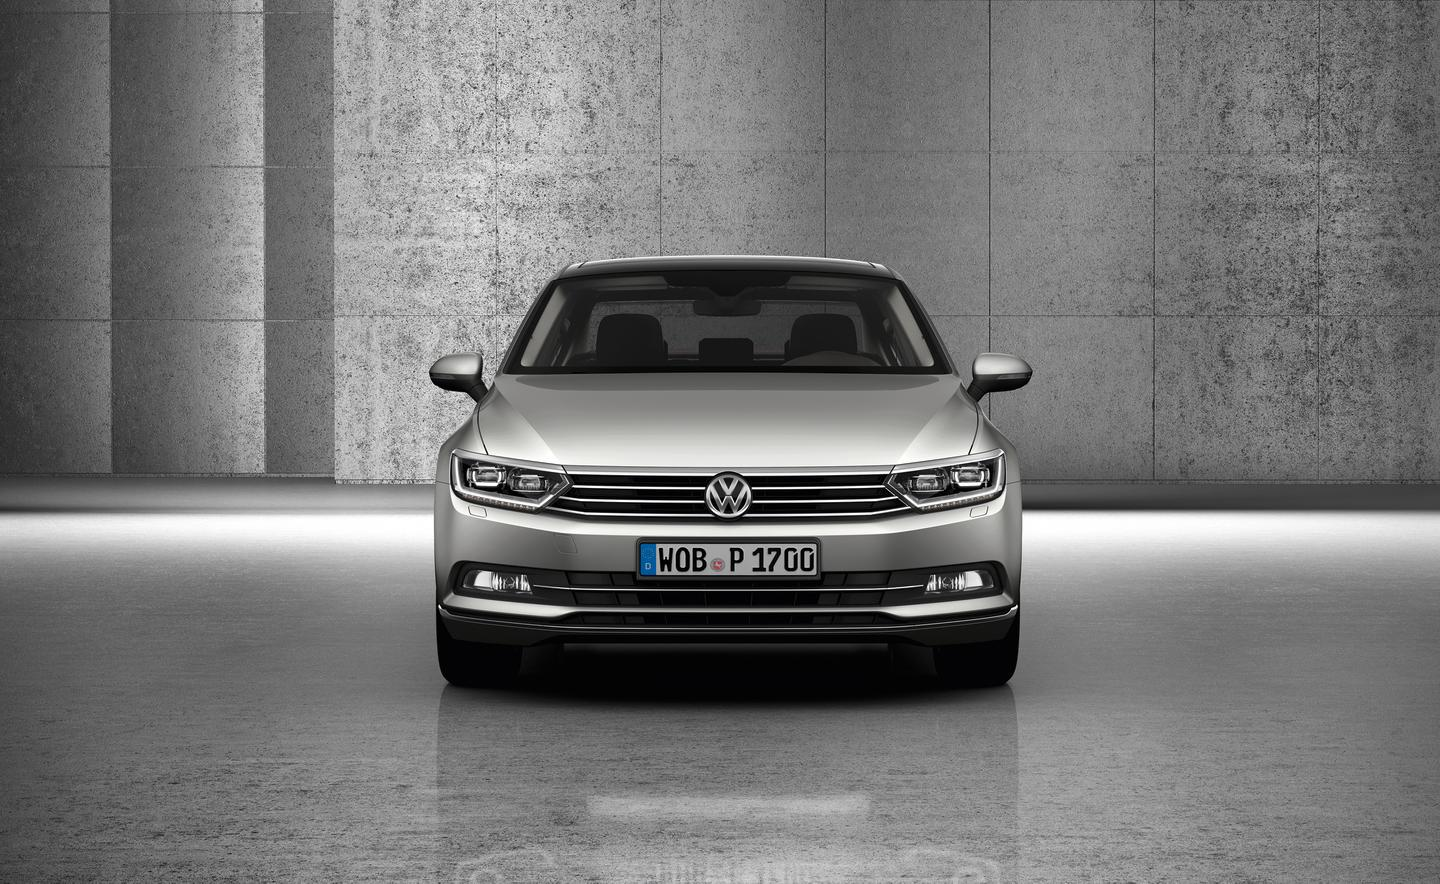 VW's new Passat is available with adaptive LED headlights